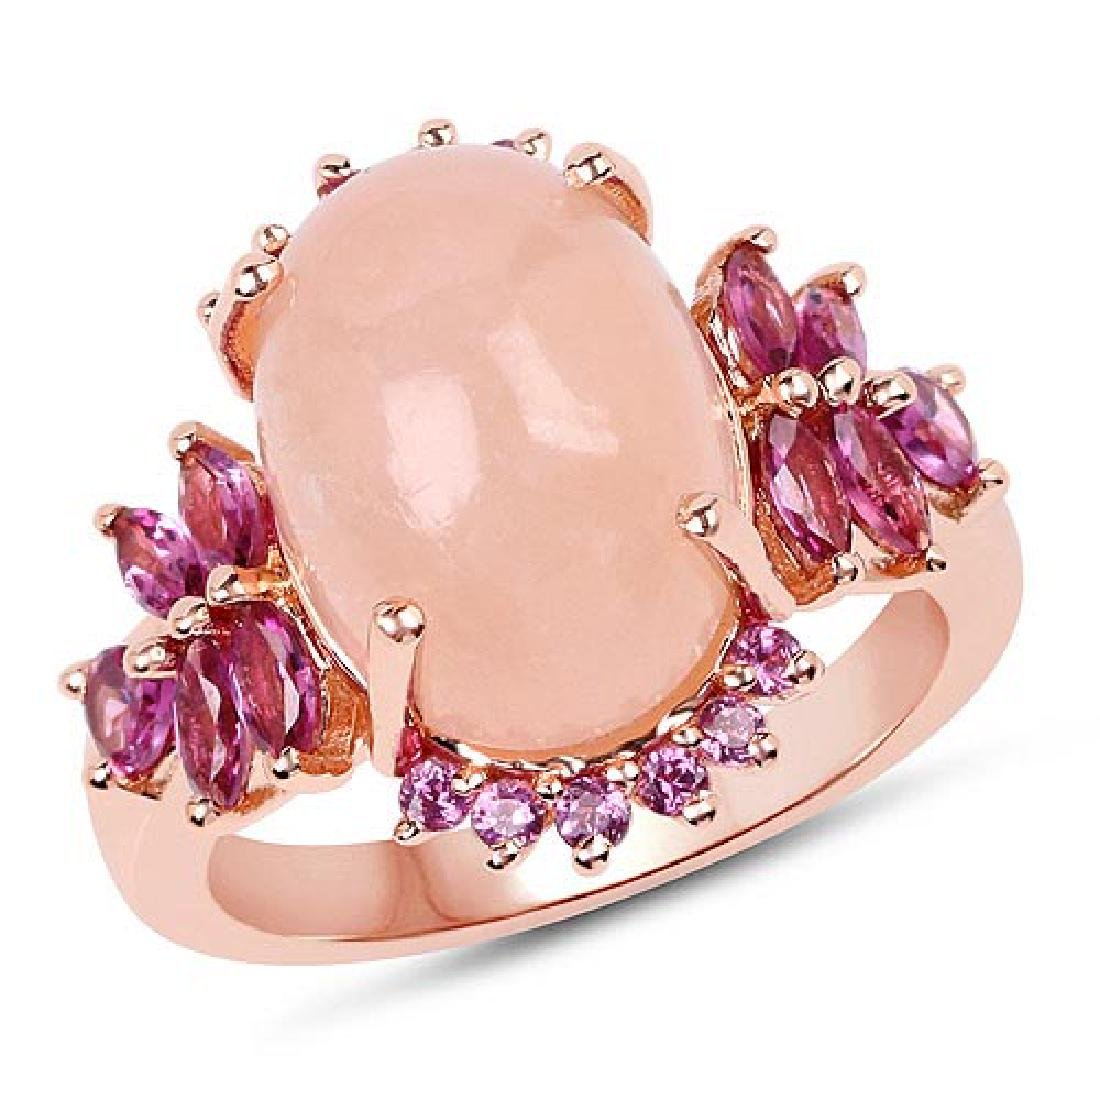 14K Rose Gold Plated 9.13 Carat Genuine Morganite and R